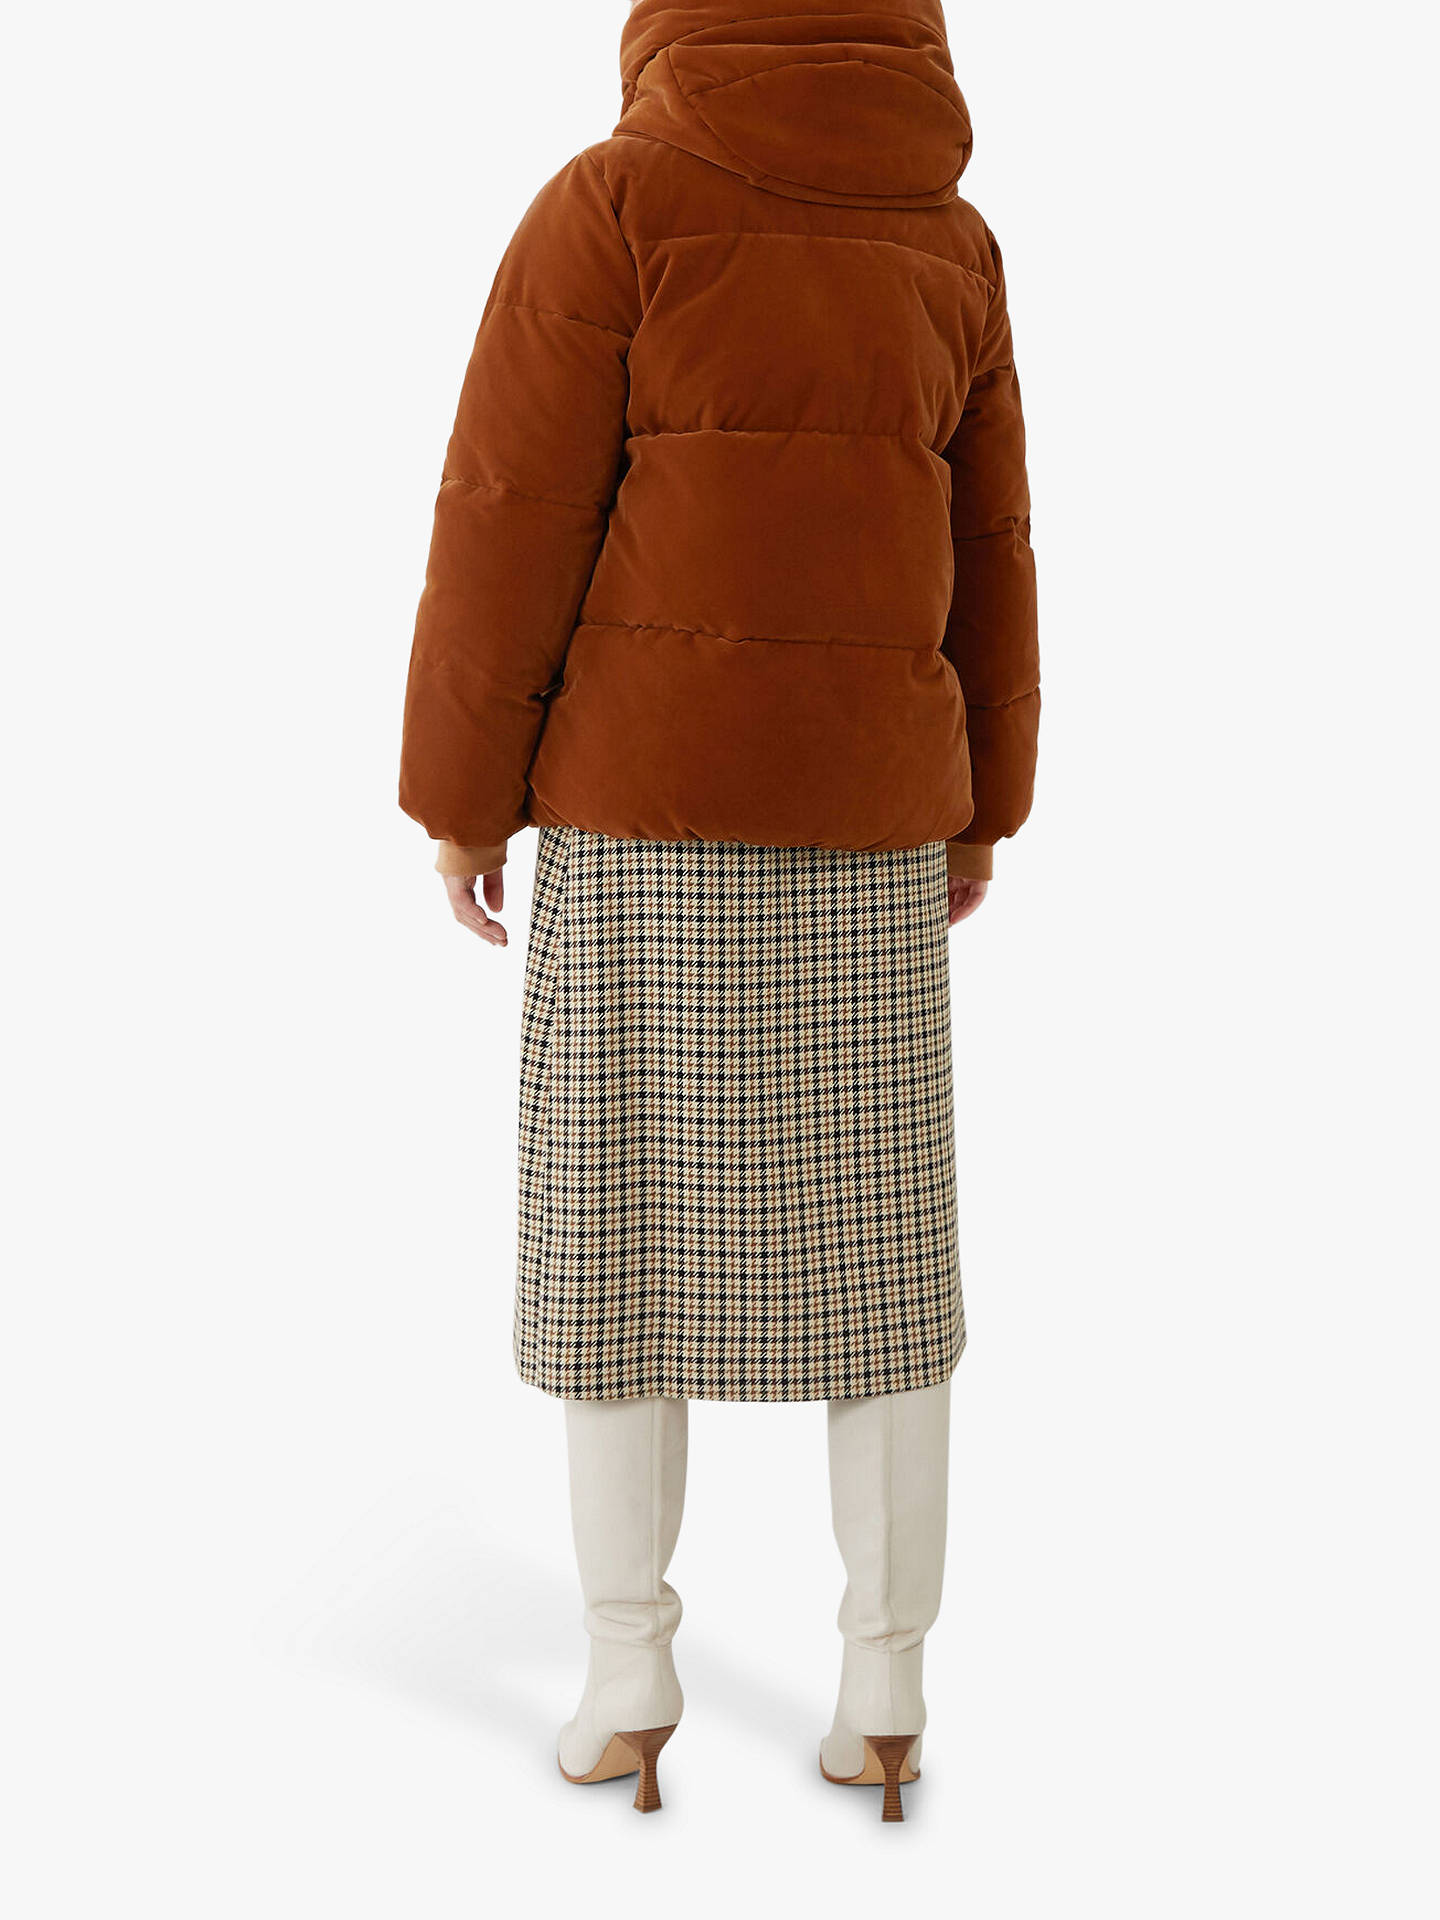 Buy Warehouse Velvet Hooded Puffer Jacket, Tan, 6 Online at johnlewis.com